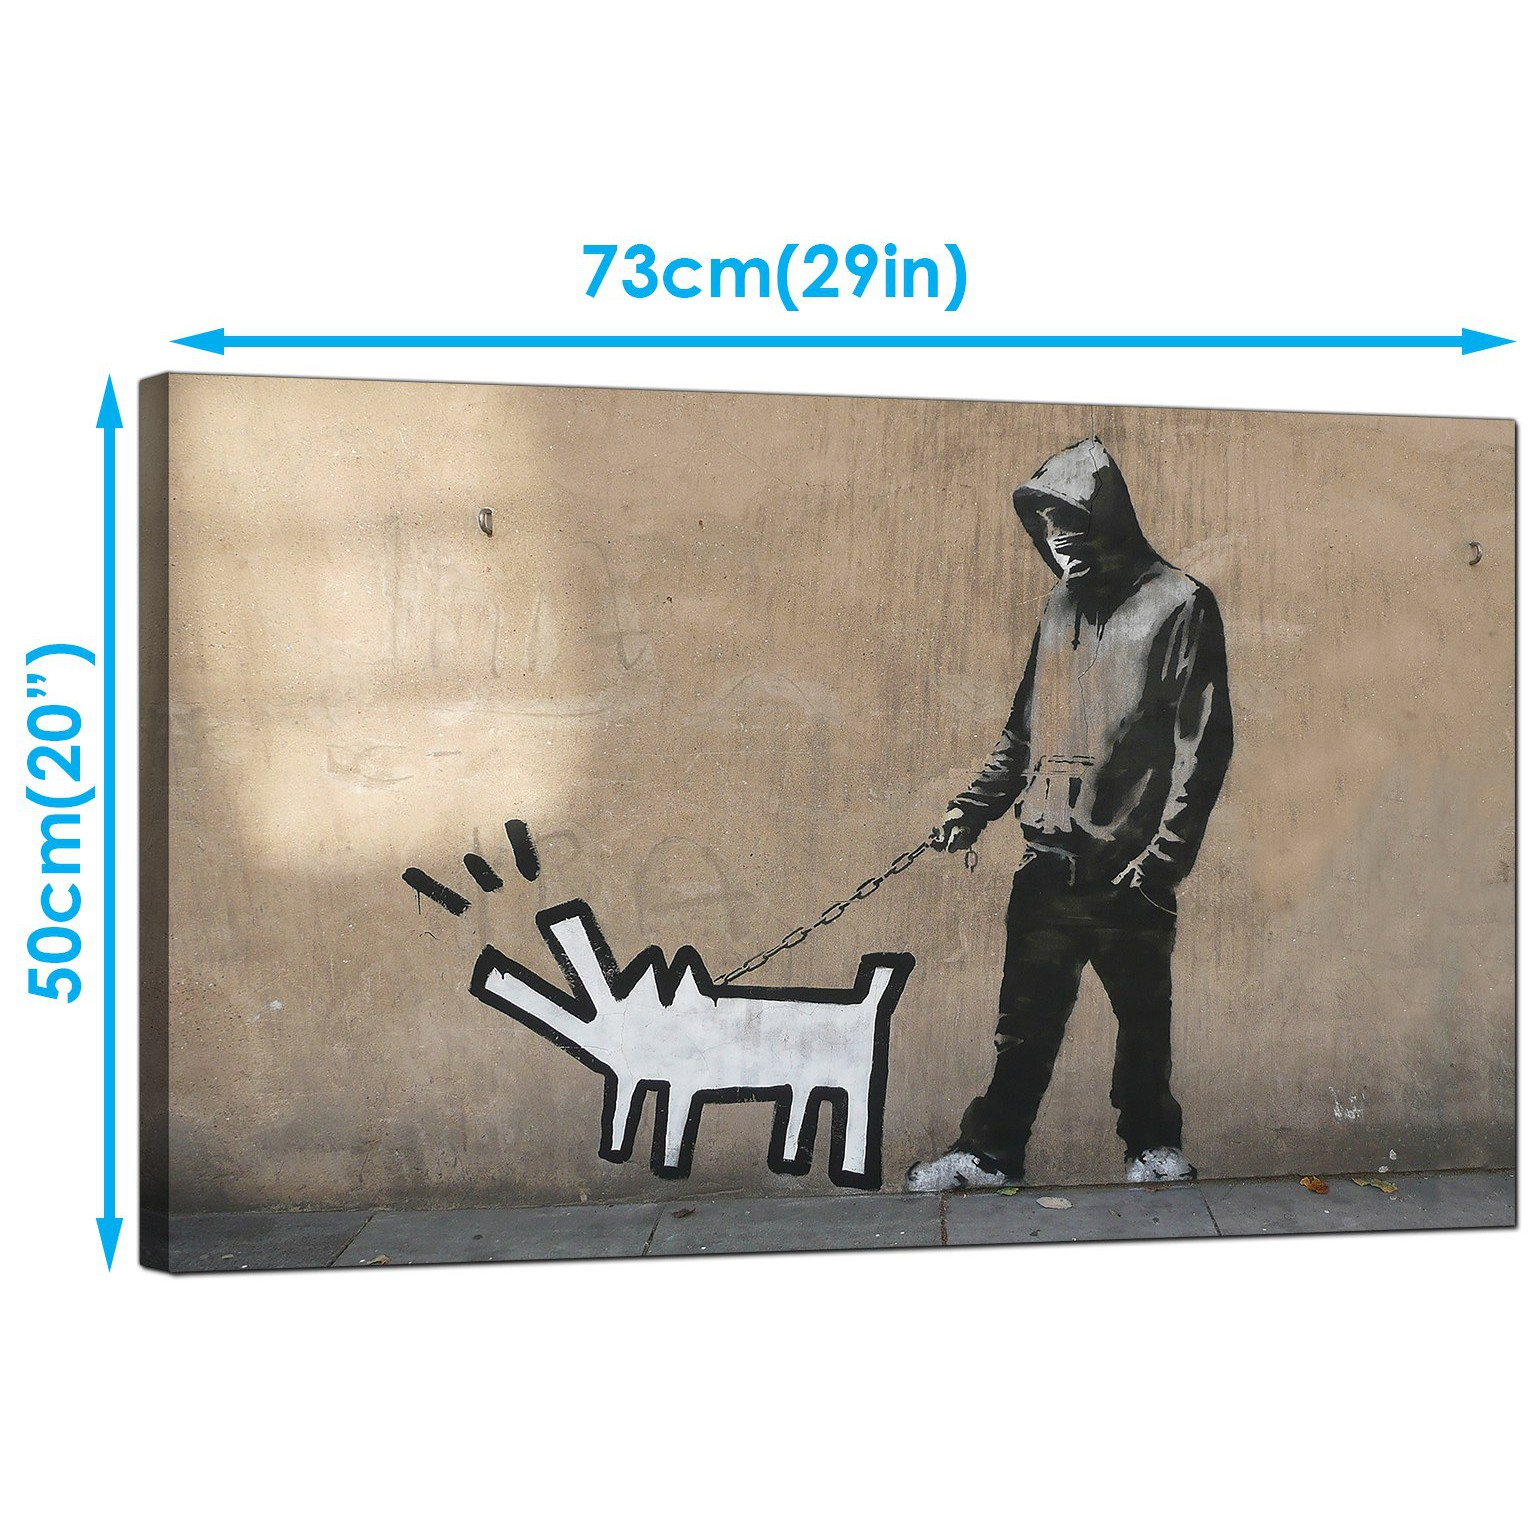 Display gallery item 3 · banksy canvas art prints choose your weapon man with keith haring dog graffiti art display gallery item 4